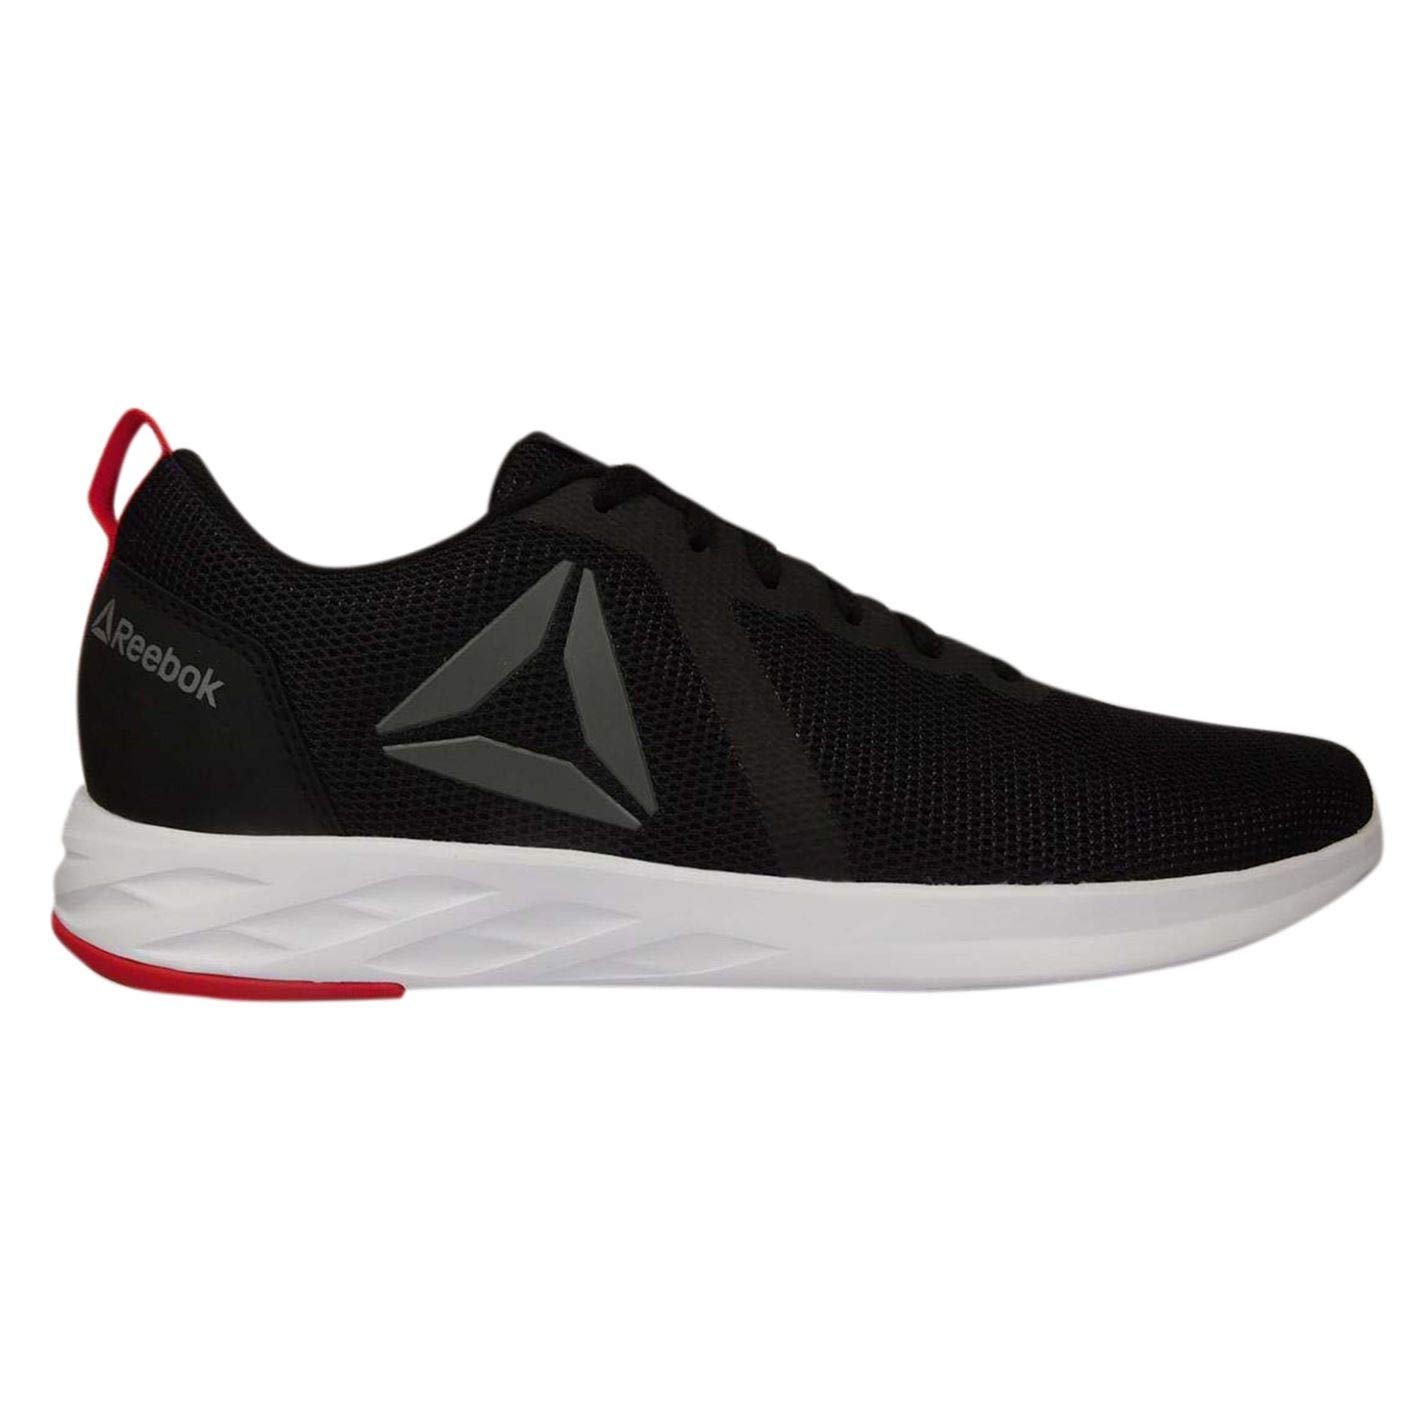 93d7f4d9d39 Reebok Mens Astro Ride Essential Trainers  Amazon.co.uk  Shoes   Bags